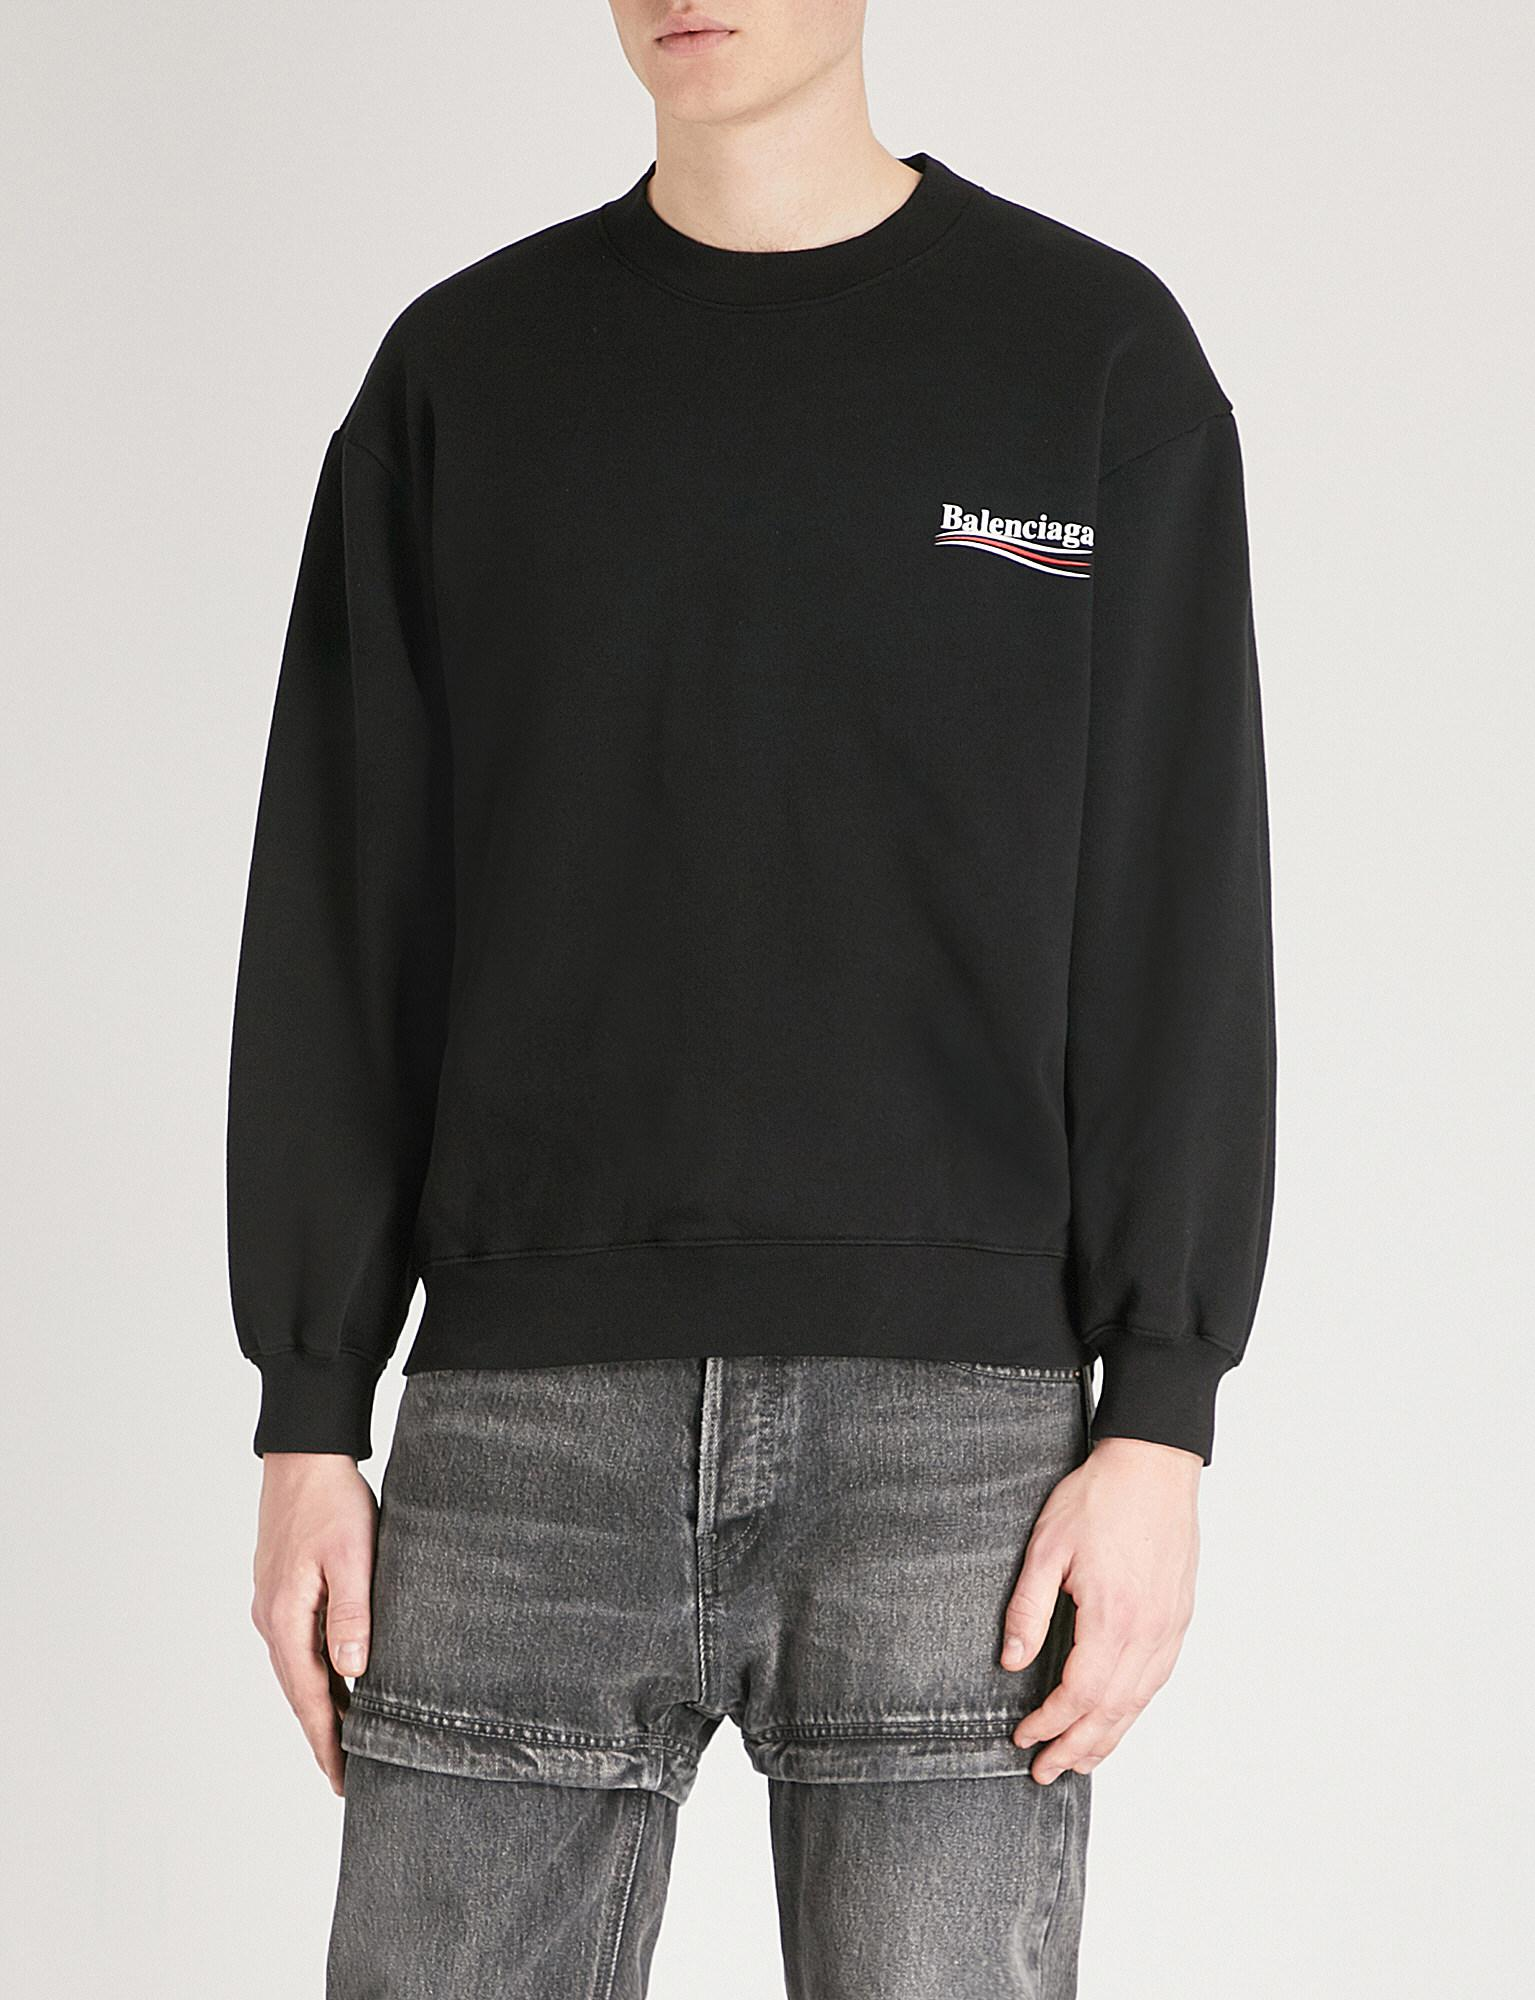 Printed Fleece-back Cotton-blend Jersey Sweatshirt Balenciaga For Cheap Sale Online Wide Range Of Online Collections Cheap Clearance aRKFGO